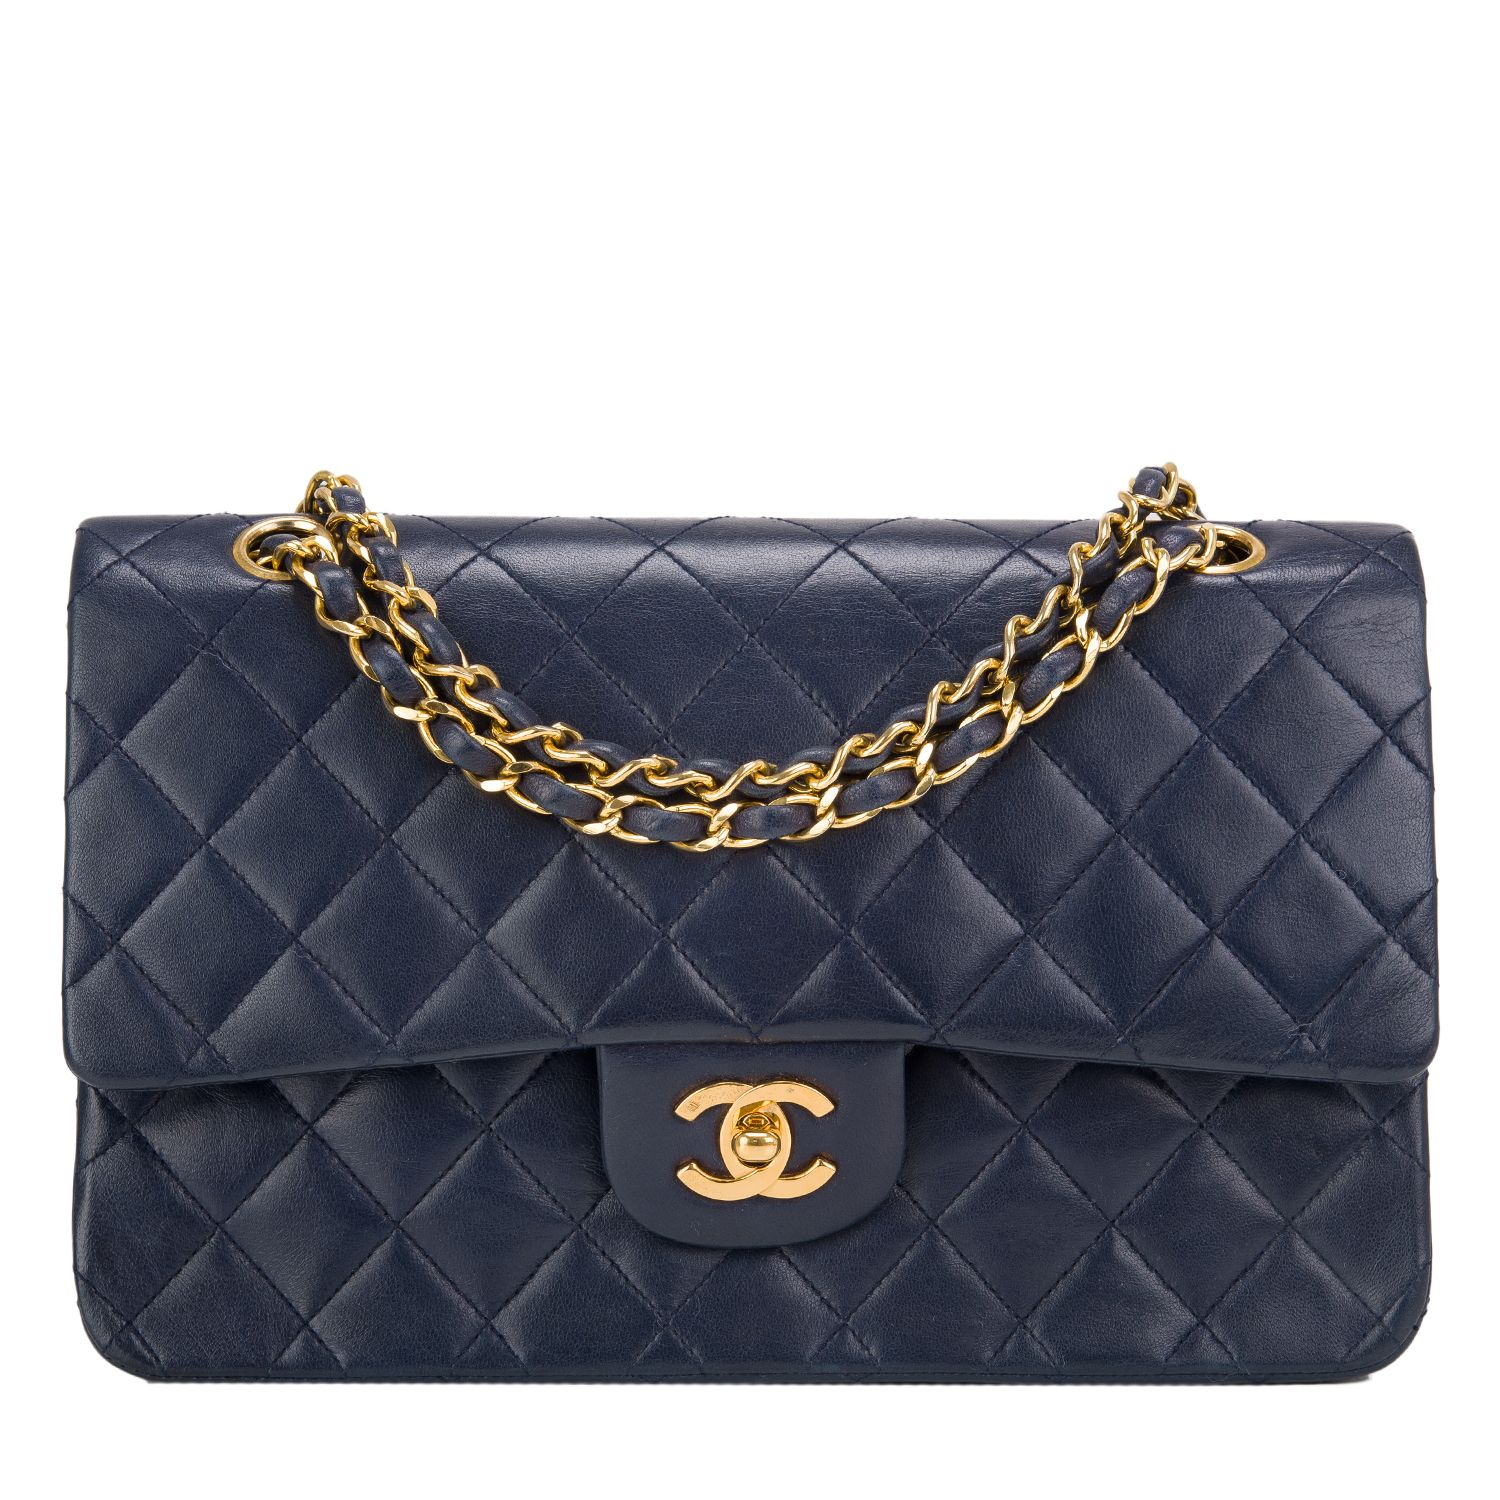 2e85112668ad Chanel Vintage Navy Quilted Lambskin Large Classic Double Flap Bag Image 1